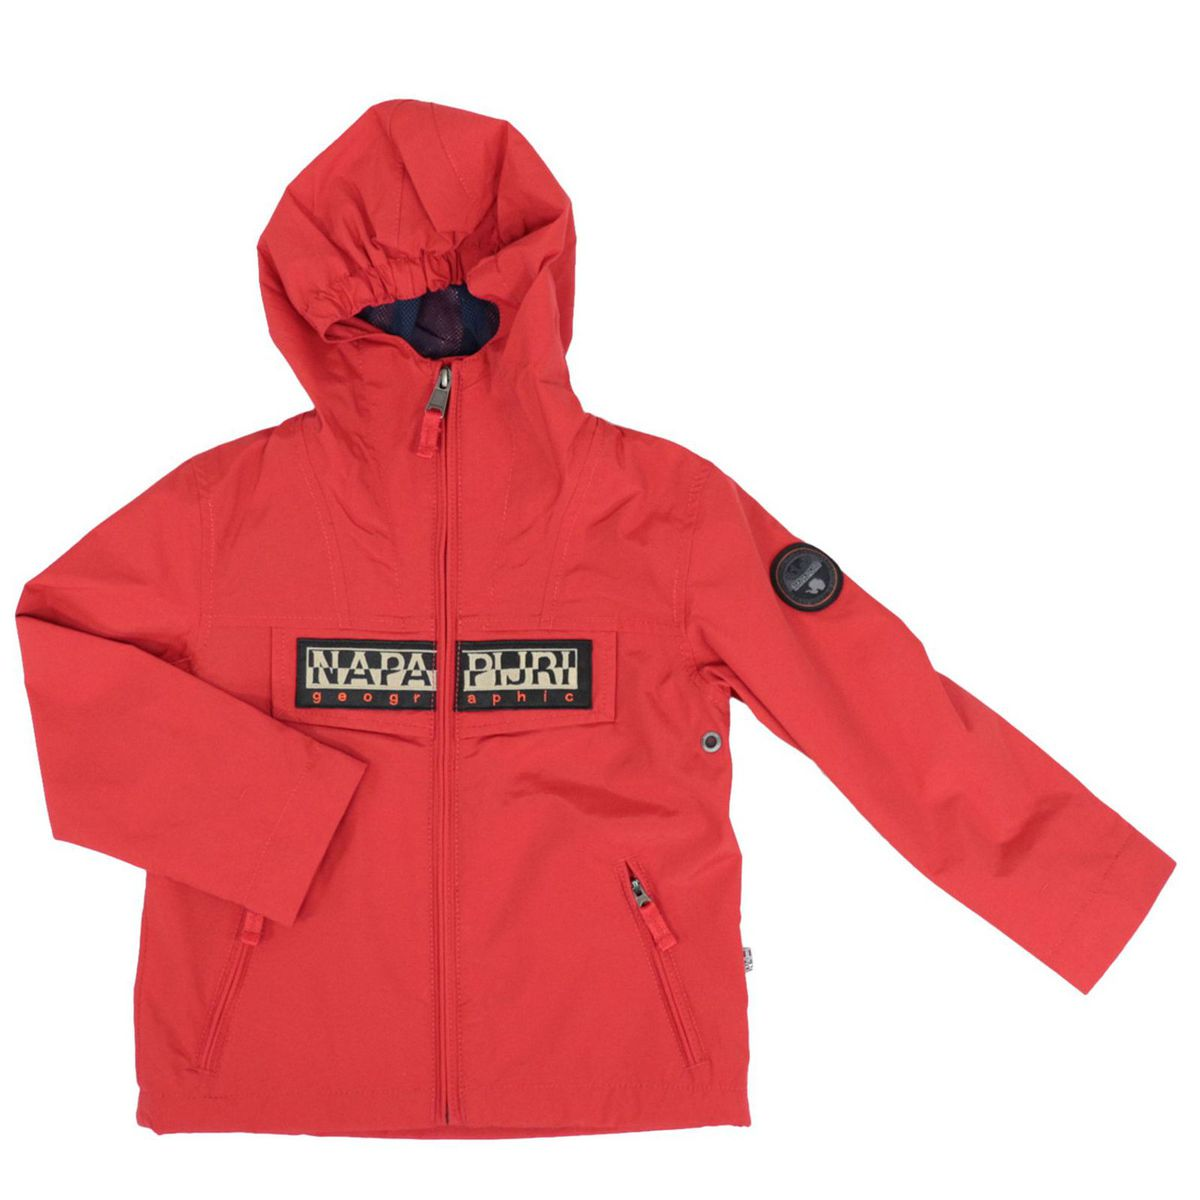 K Rainforest S OP 2 nylon jacket with hood and logo Red NAPAPIJRI